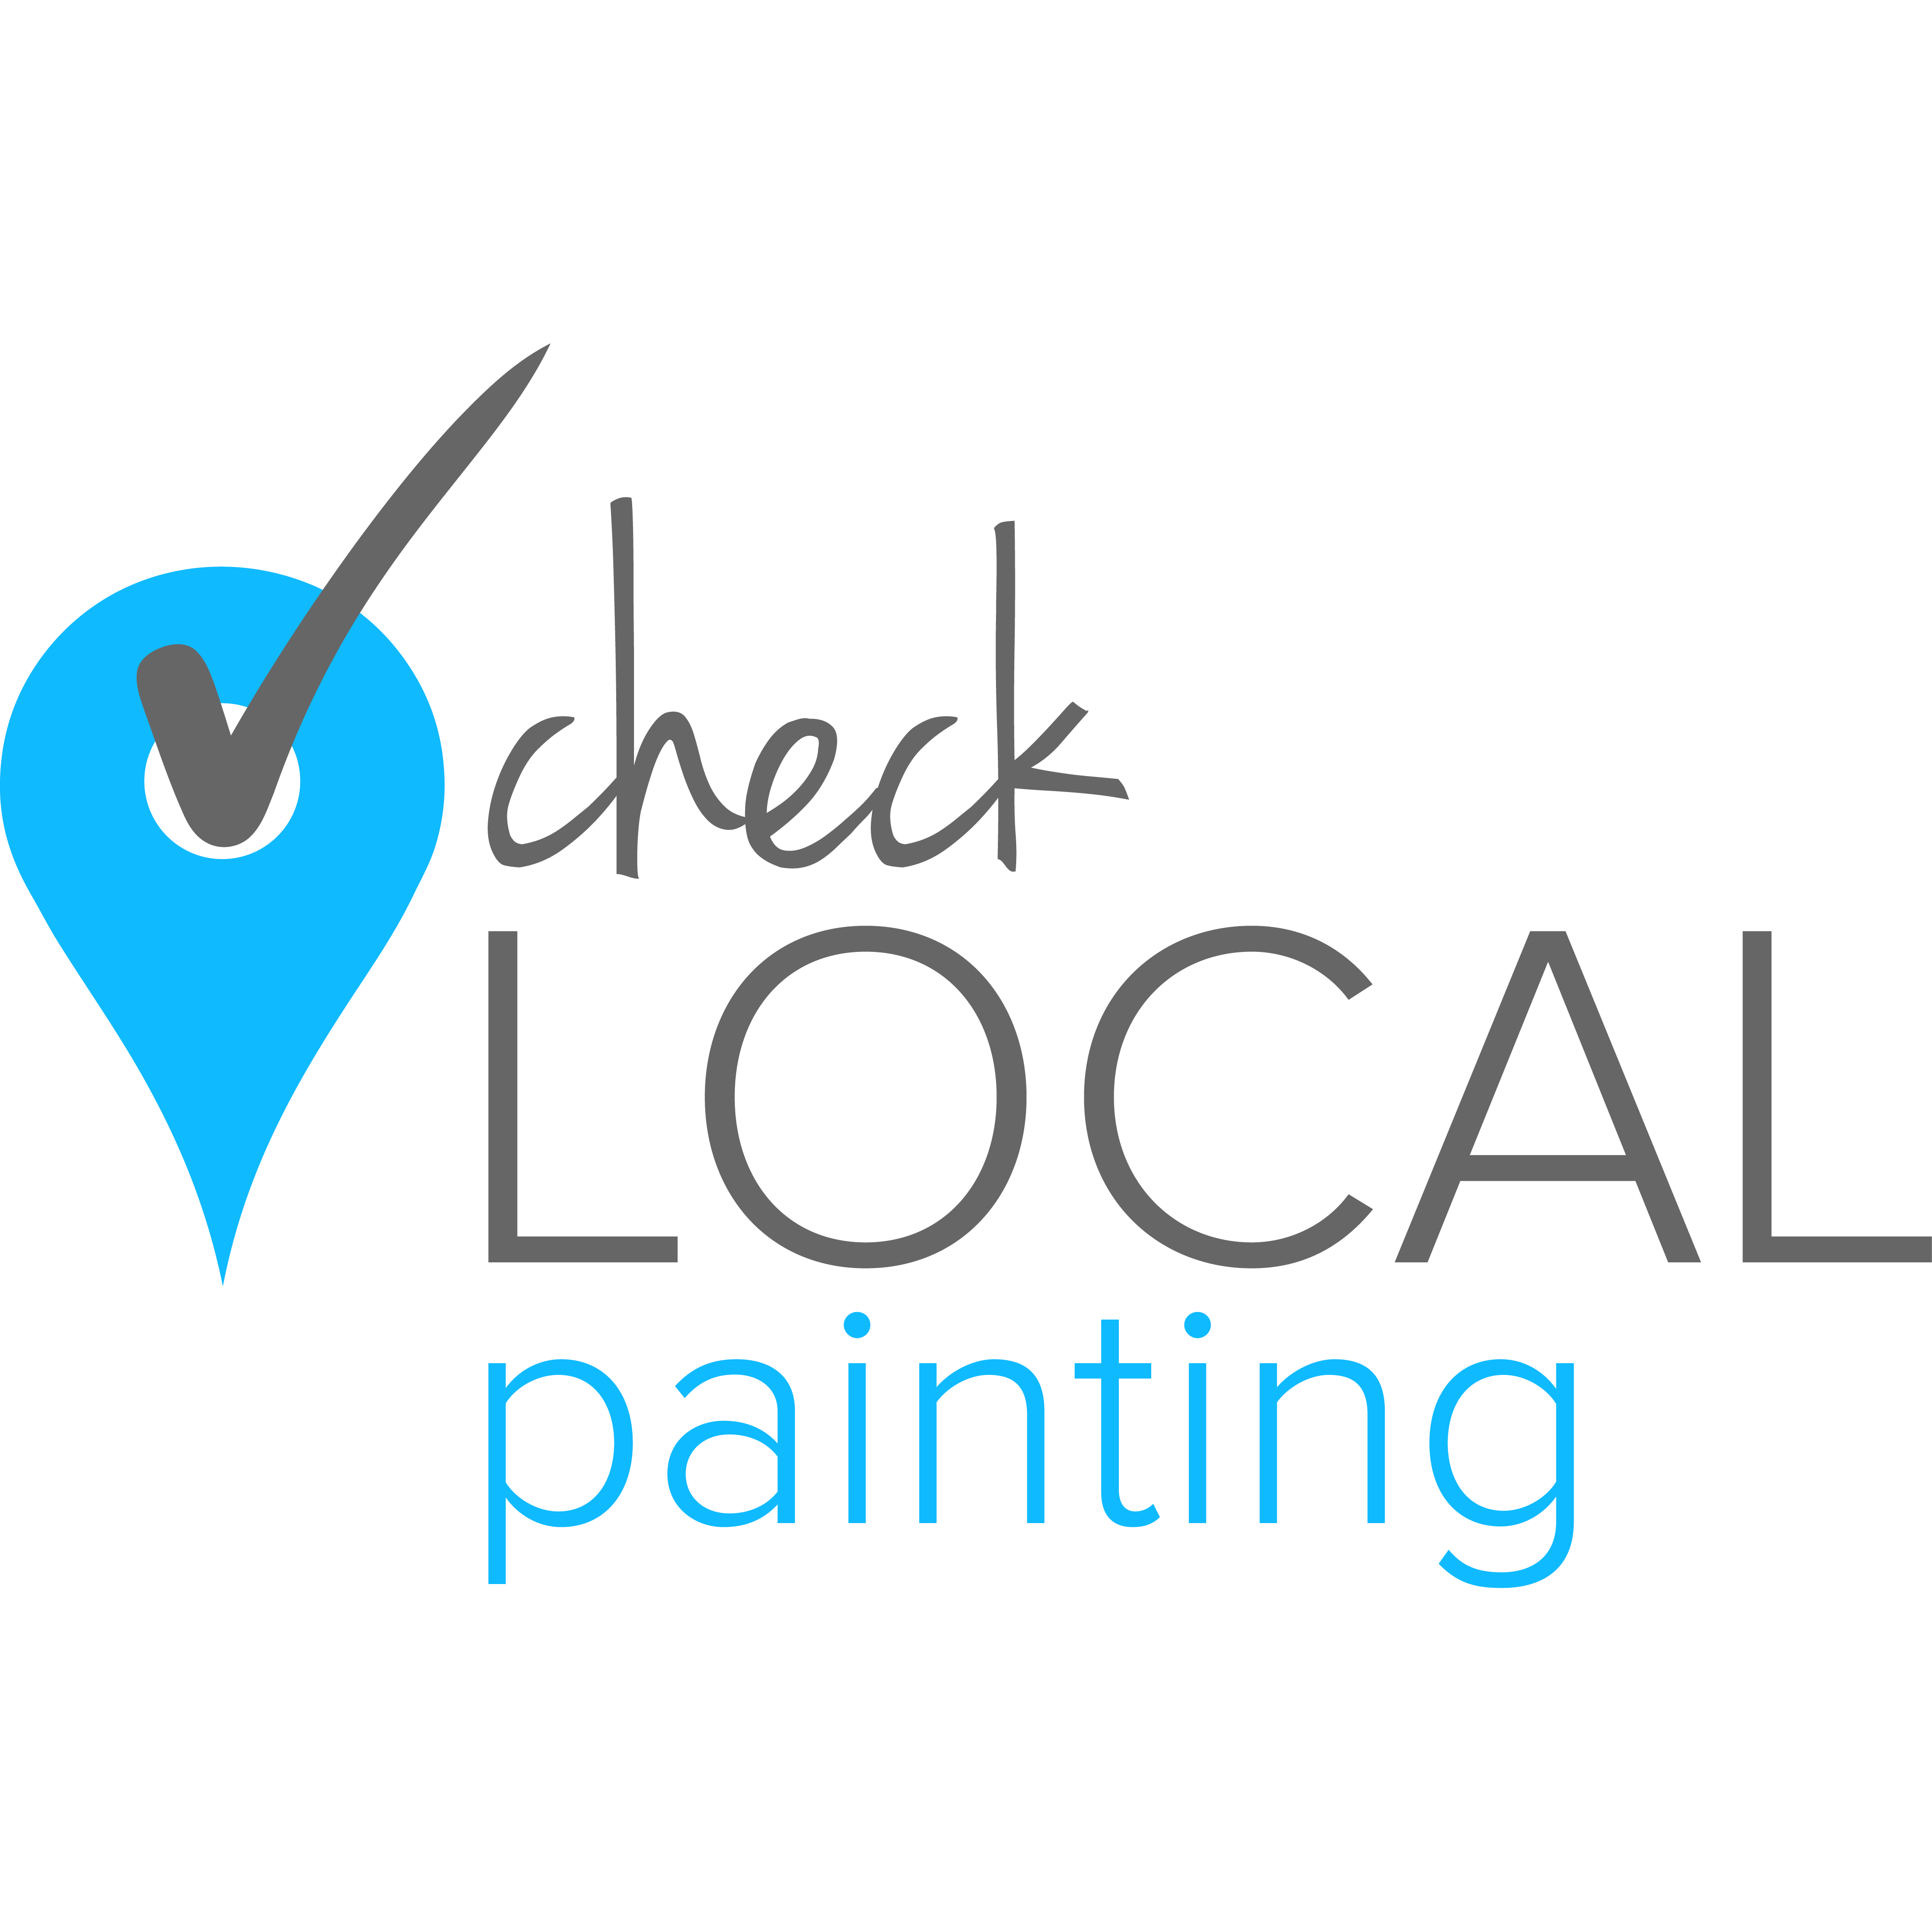 Check Local Painting image 4